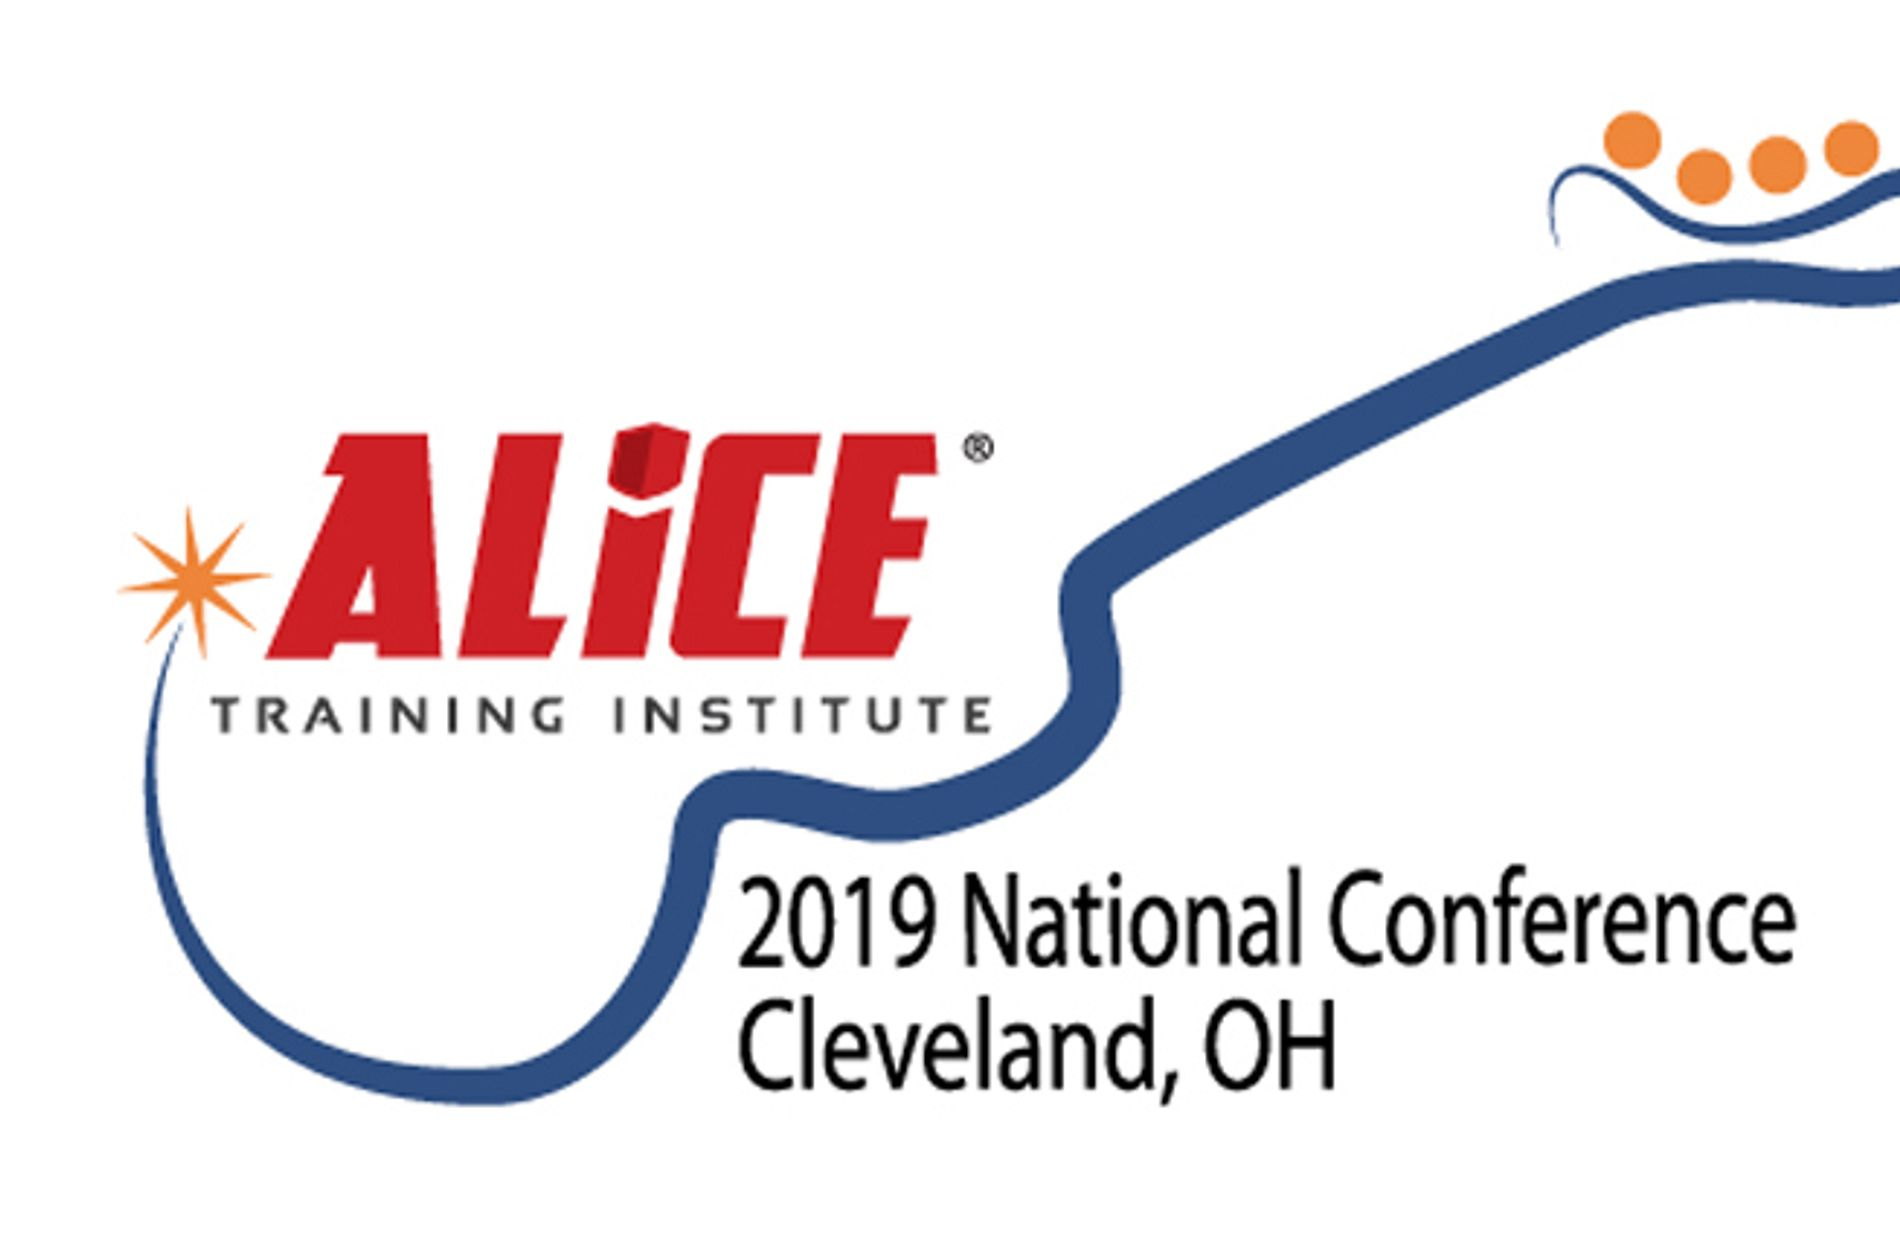 2019 ALICE National Conference